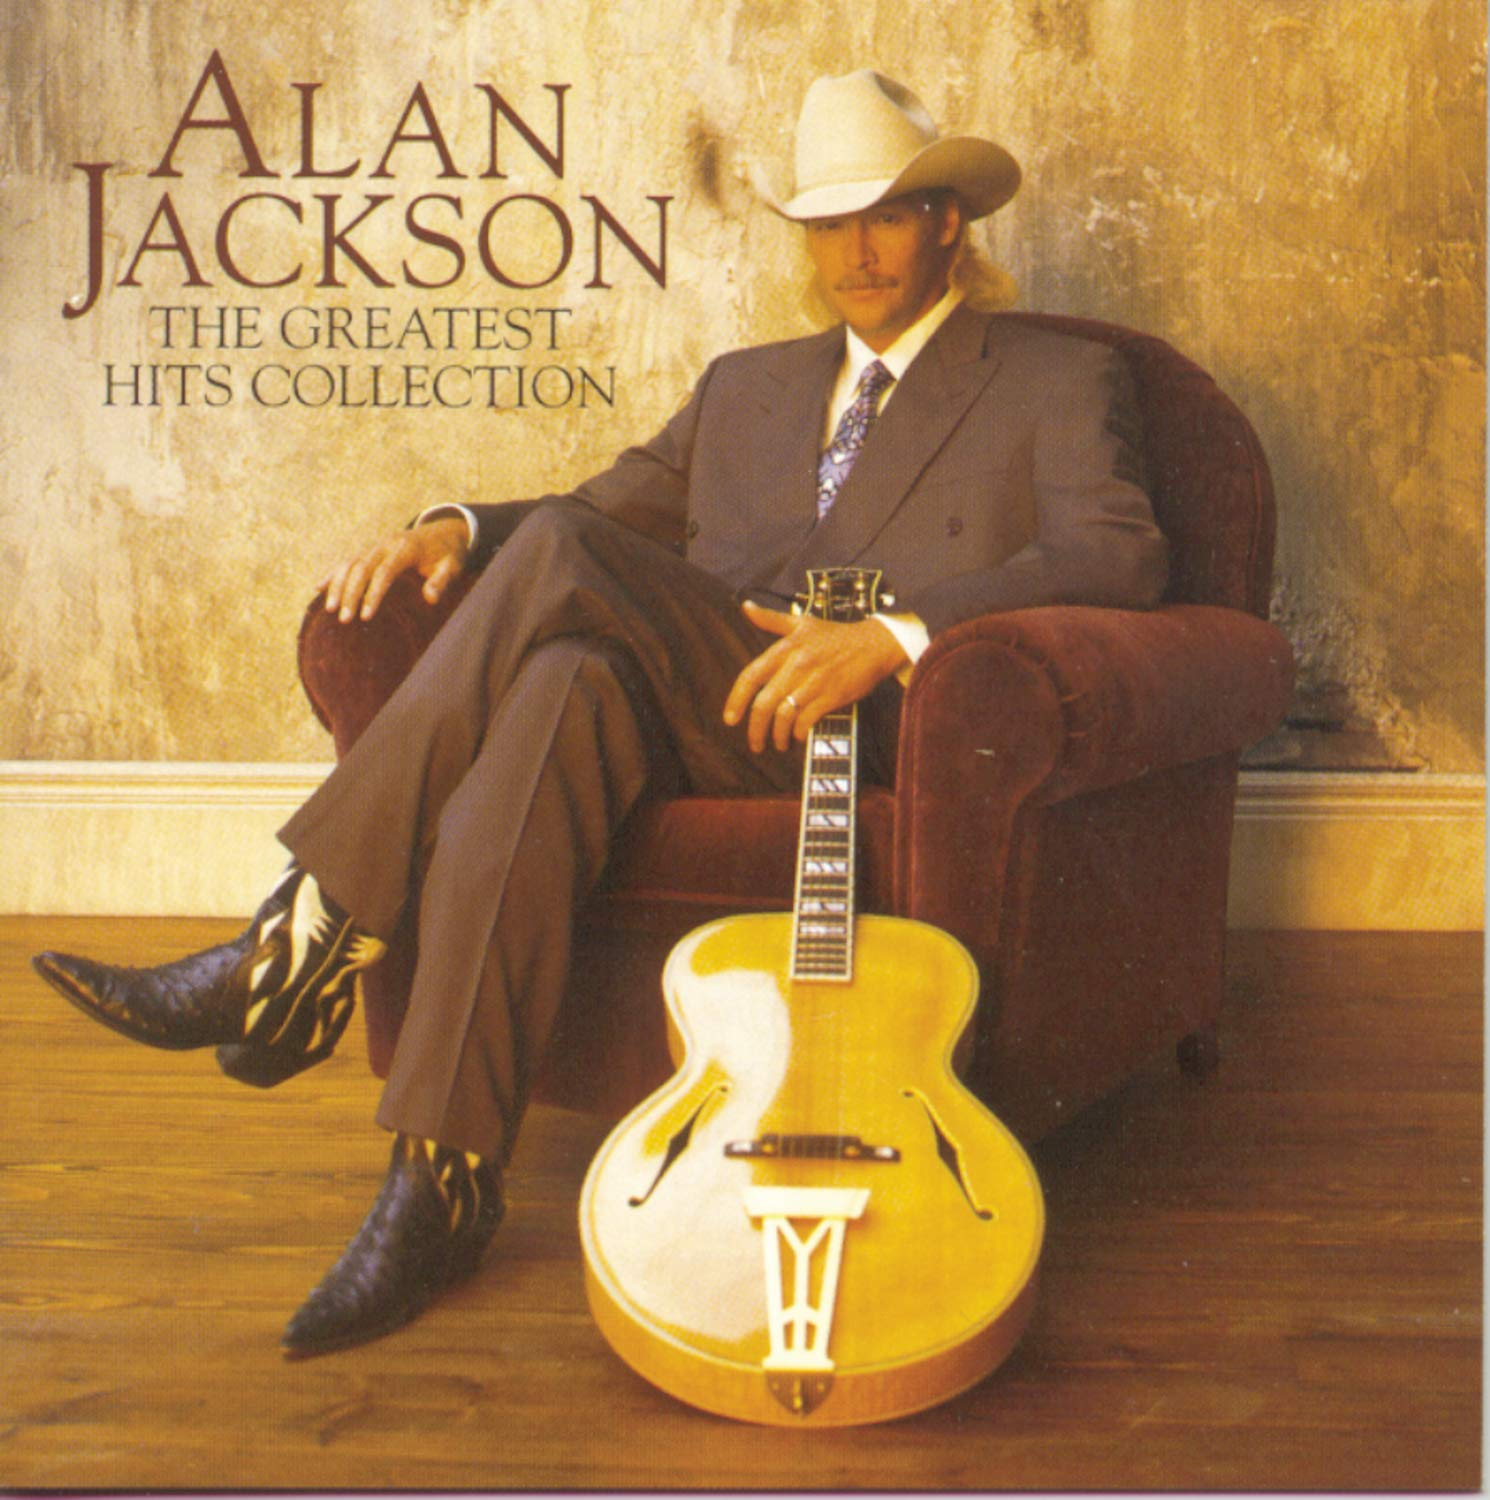 Alan Jackson - The Greatest Hits Collection - Amazon.com Music